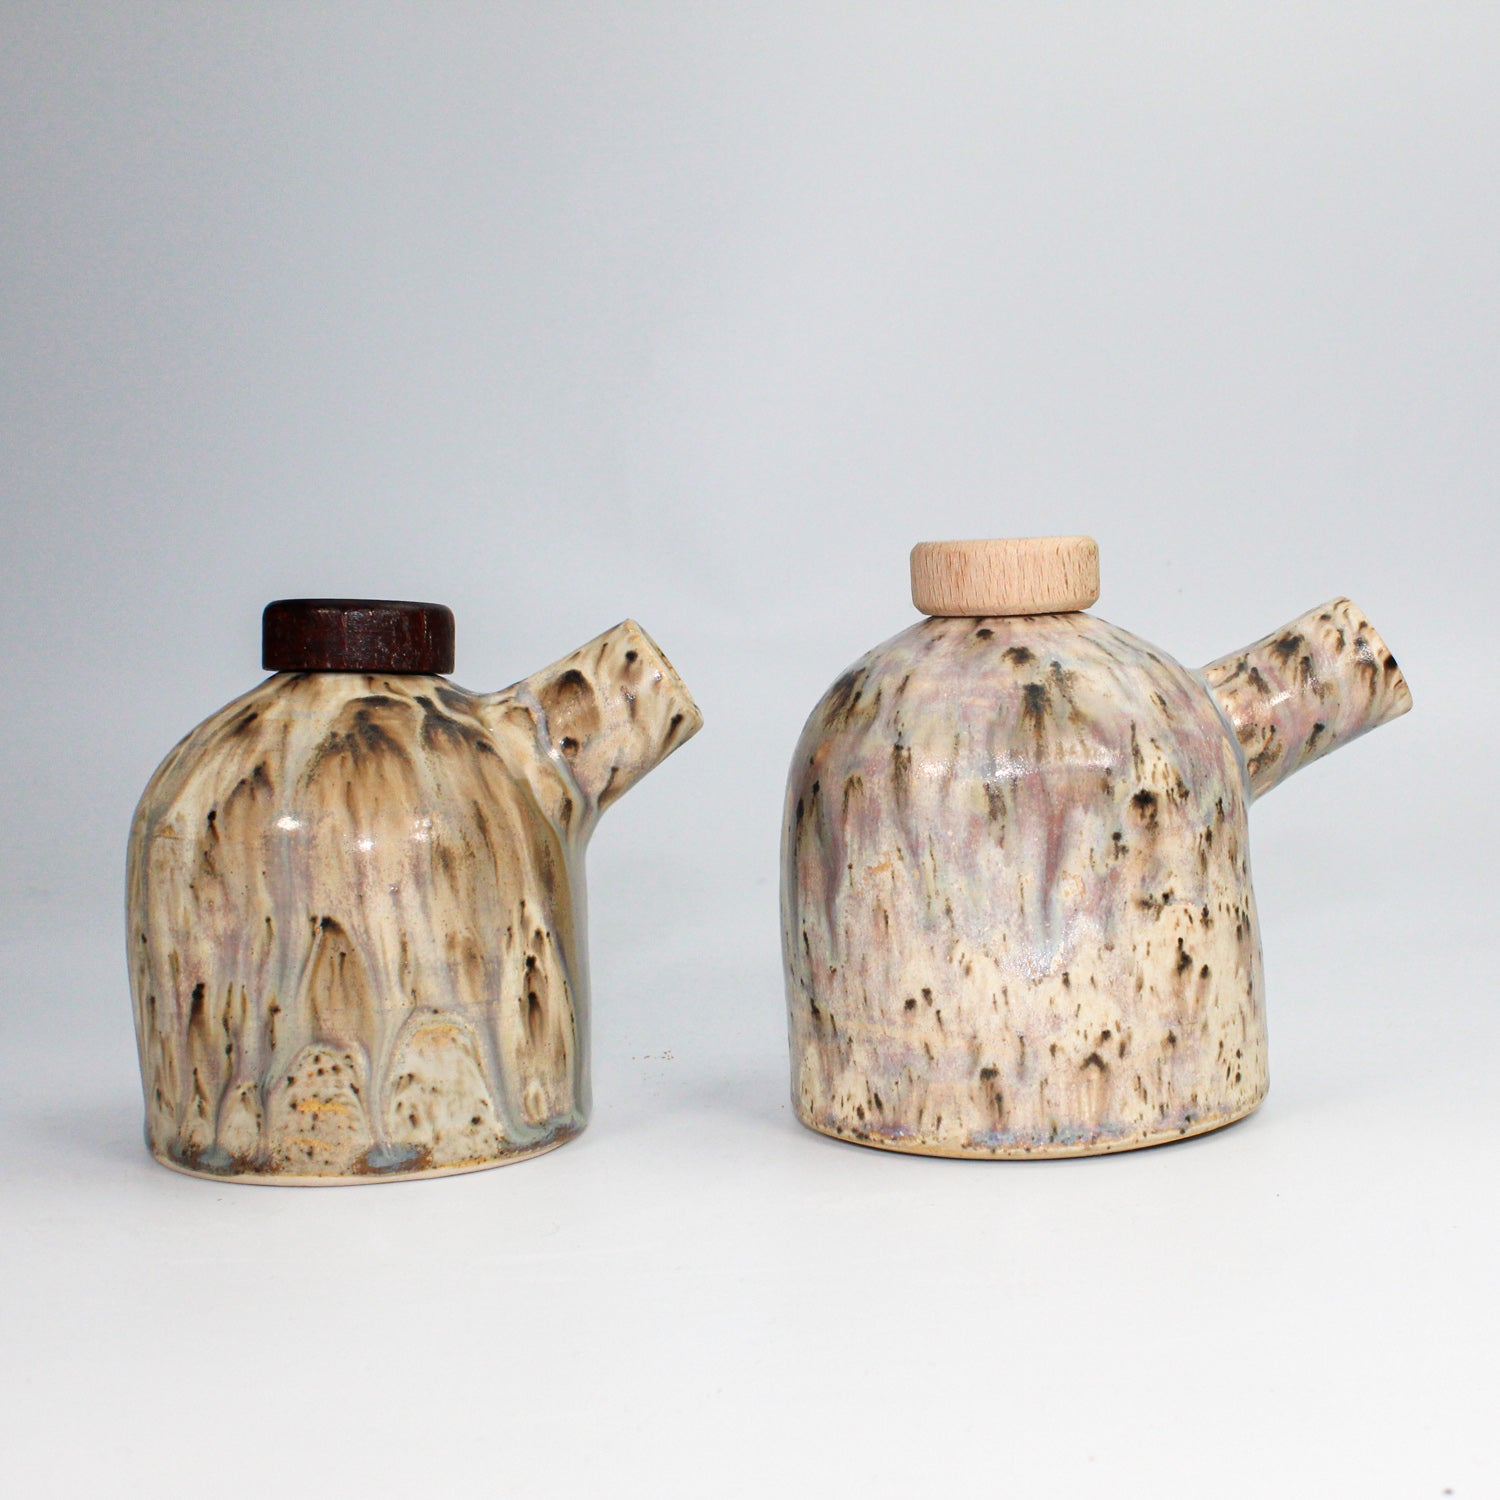 Pair of oil and vinegar pourers. Different coloured caps. Beautiful marbled glaze.